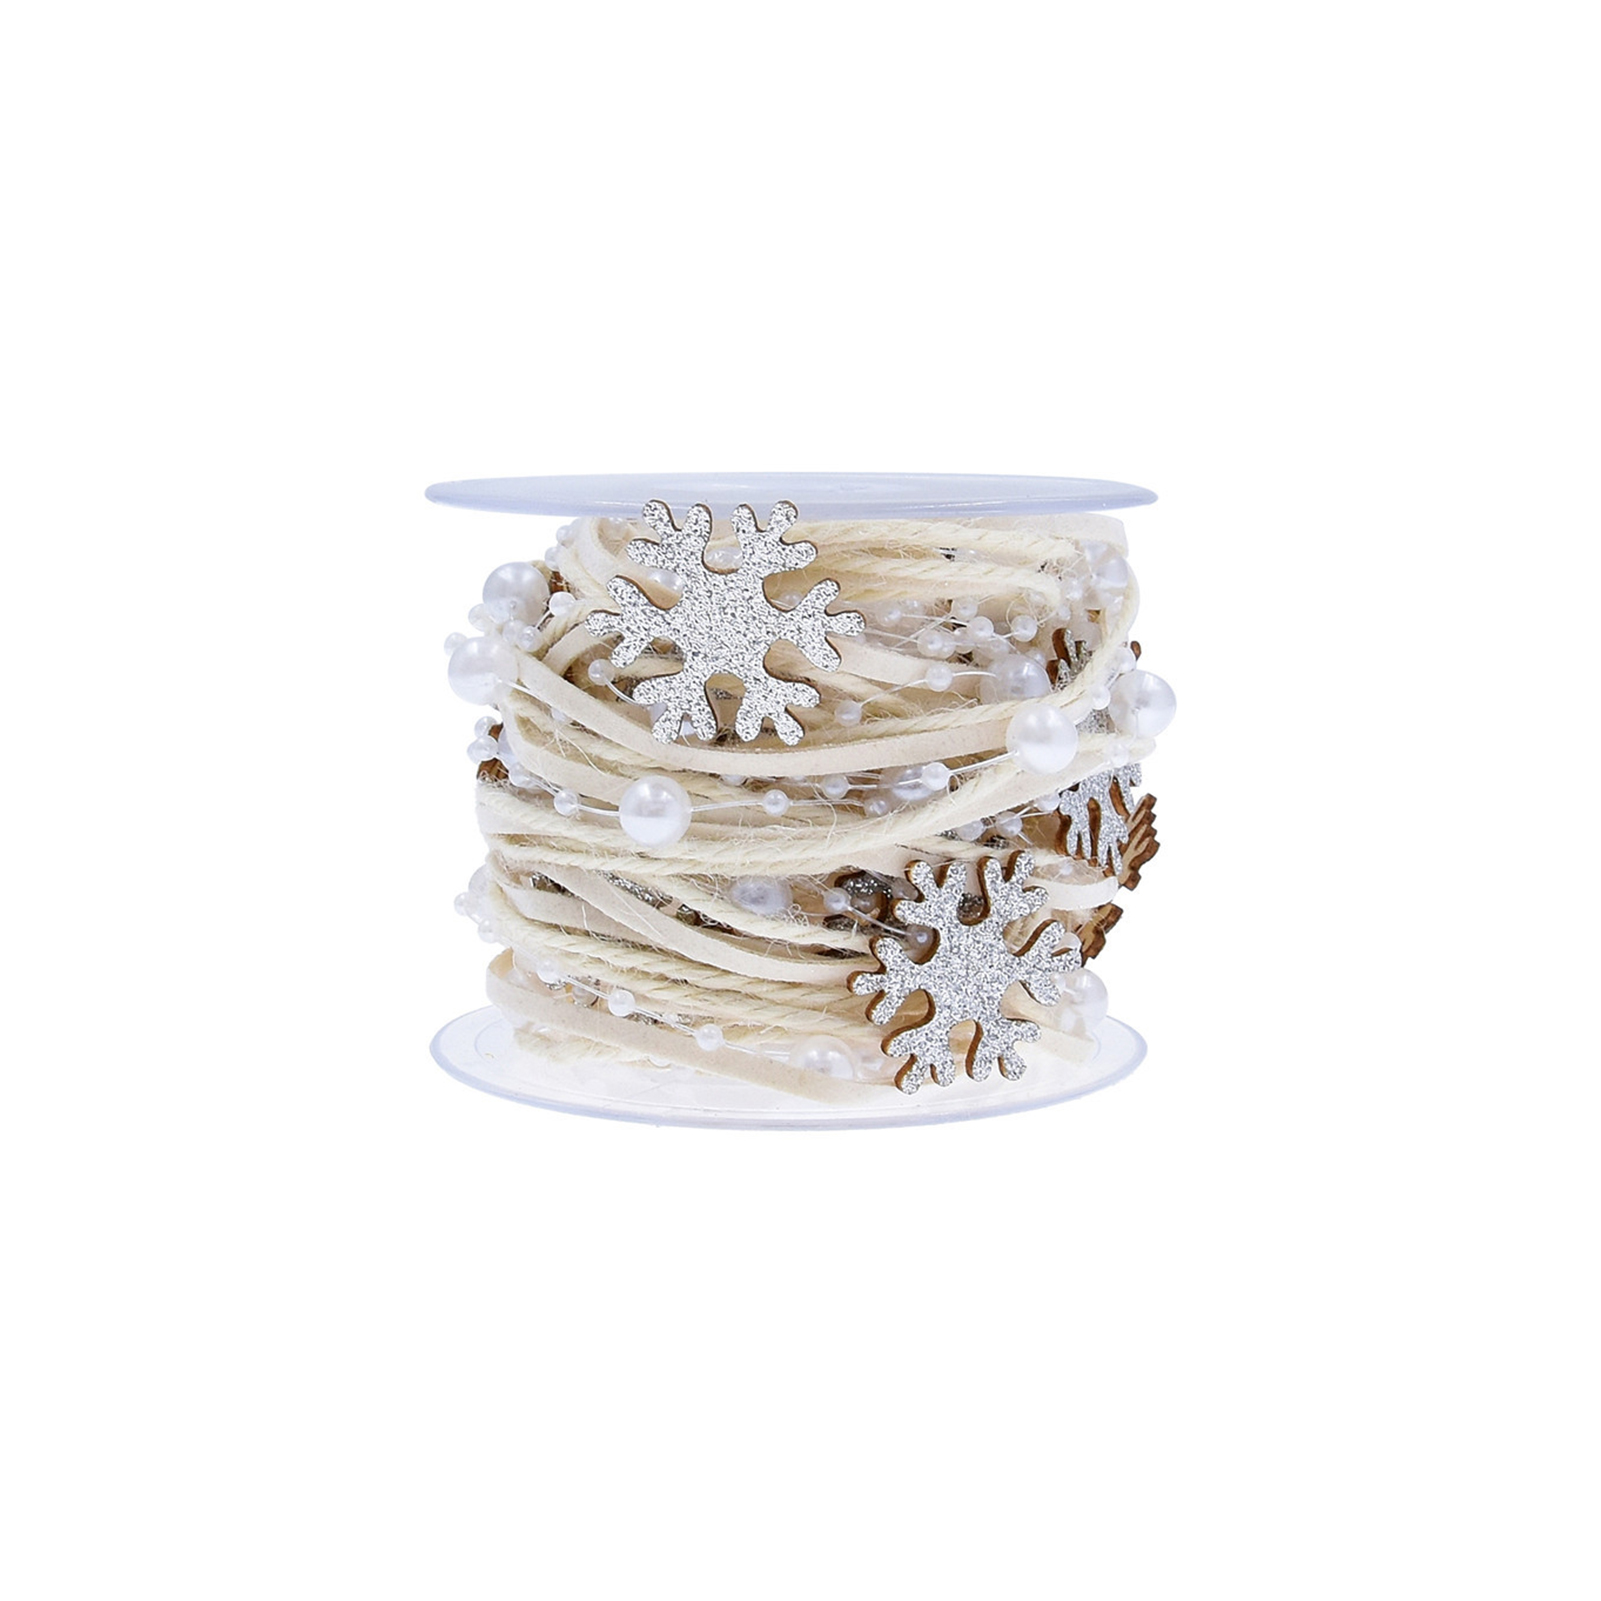 10cm White Pillar Candle with a 7cm Silver Glitter or Tree of Life Plate Free pp